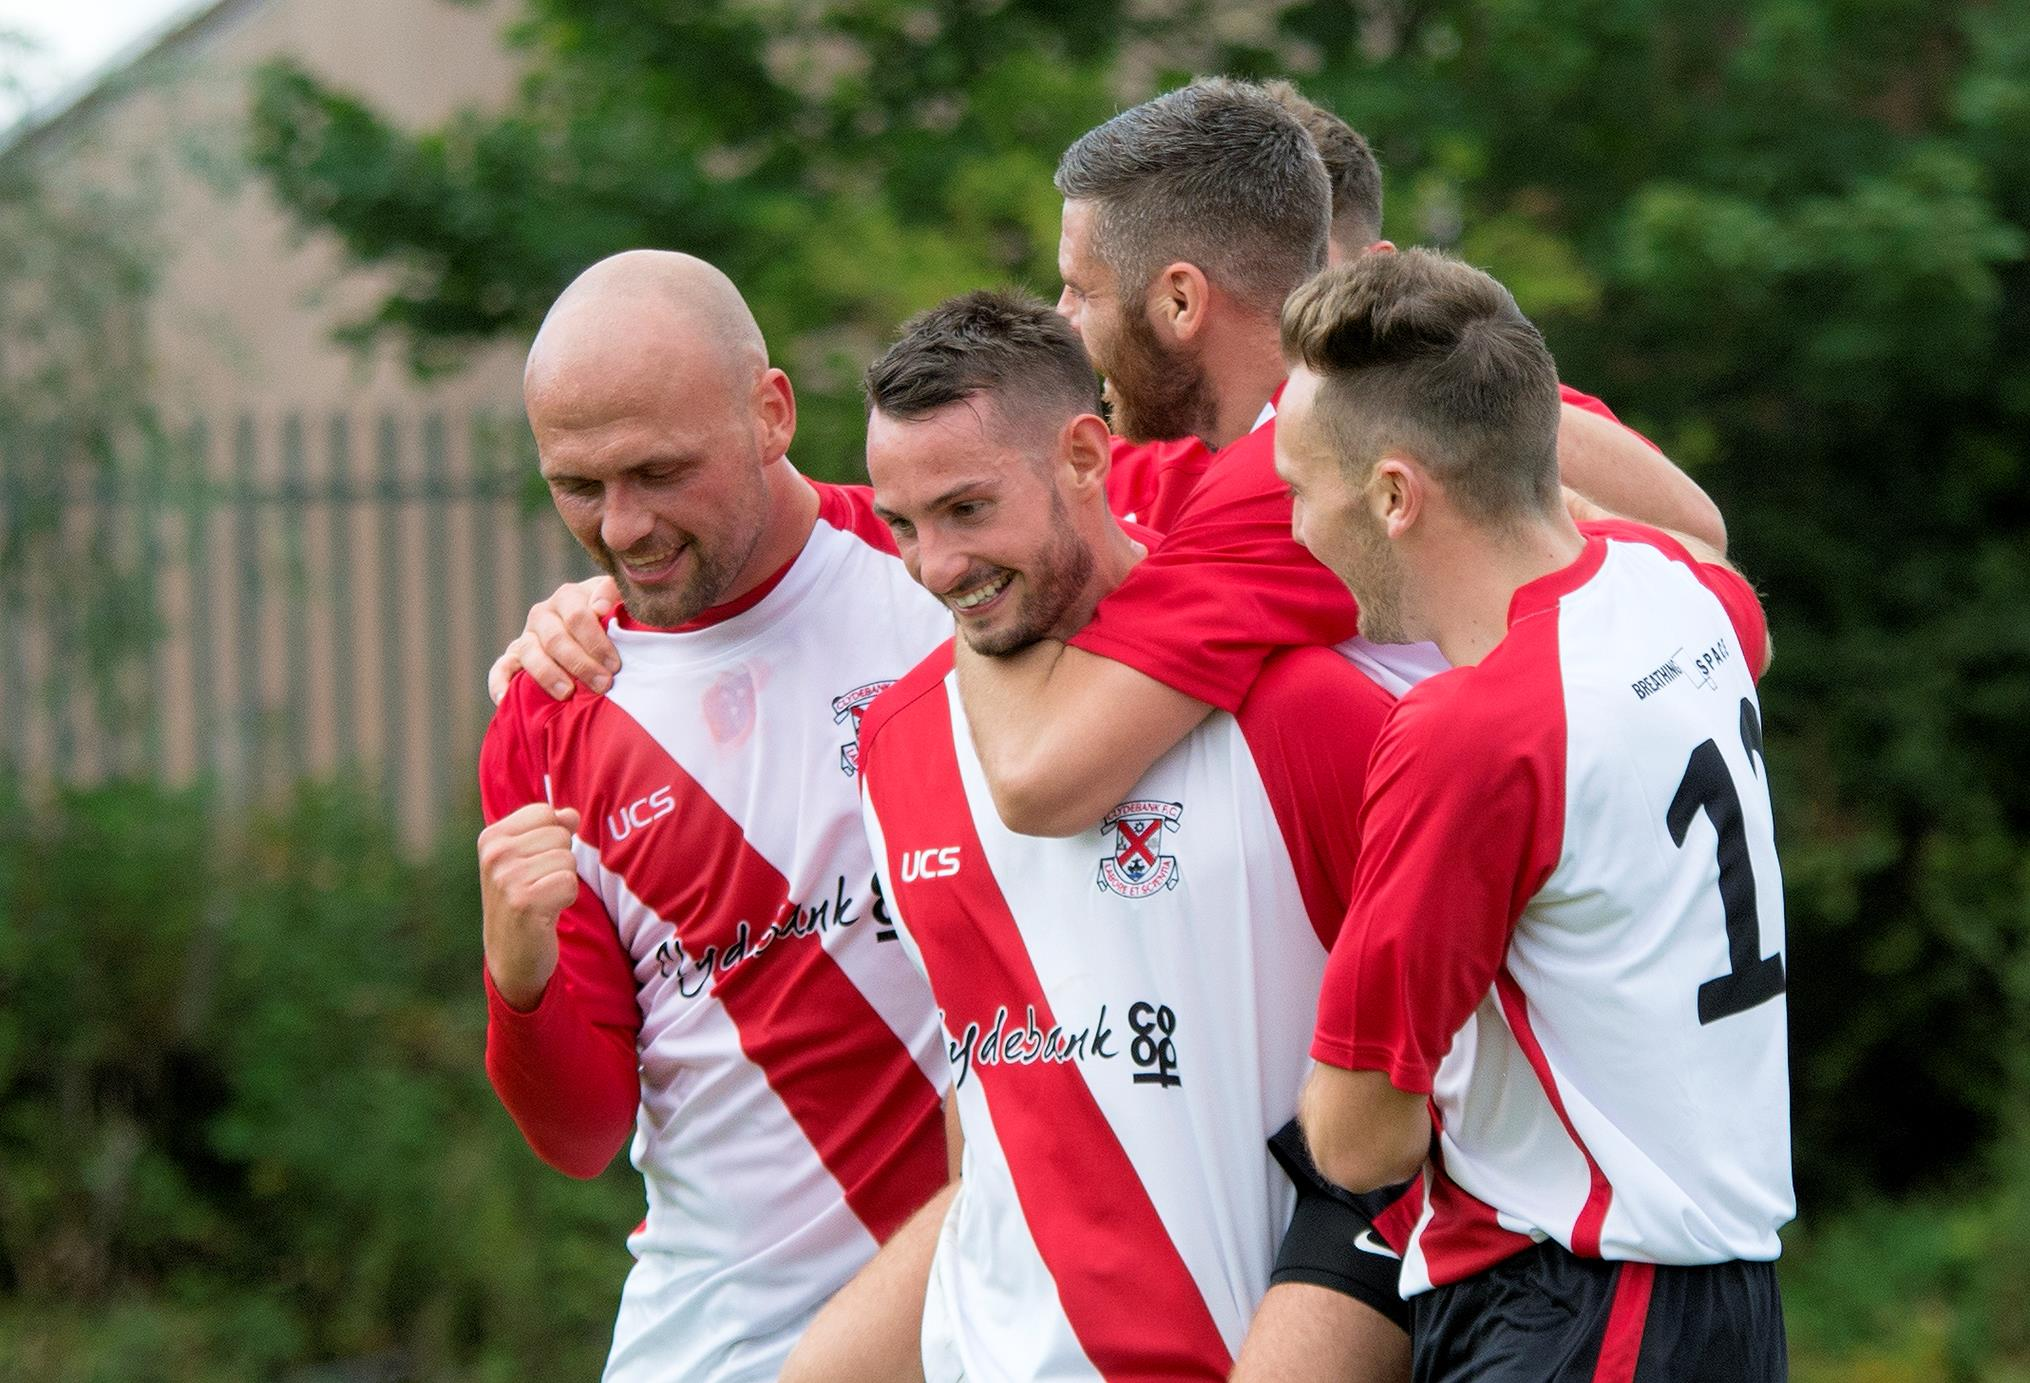 Clydebank manager: Whe-Ho tie will be ideal test for us before league opener